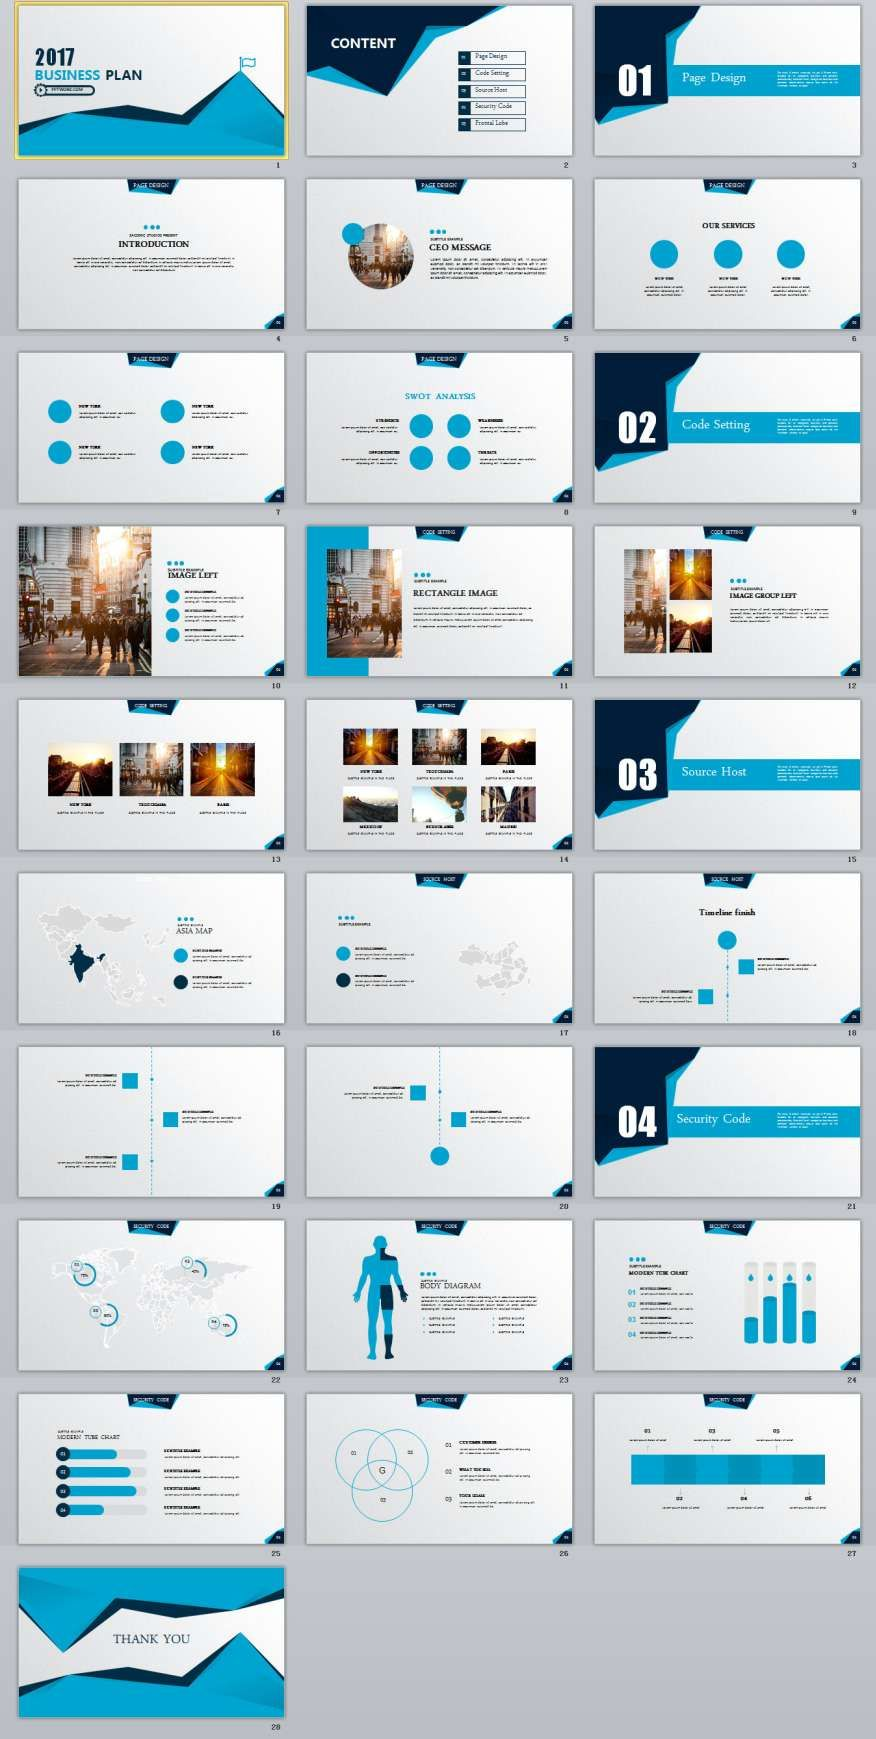 28 Best Business Plan Powerpoint Templates Presentaciones